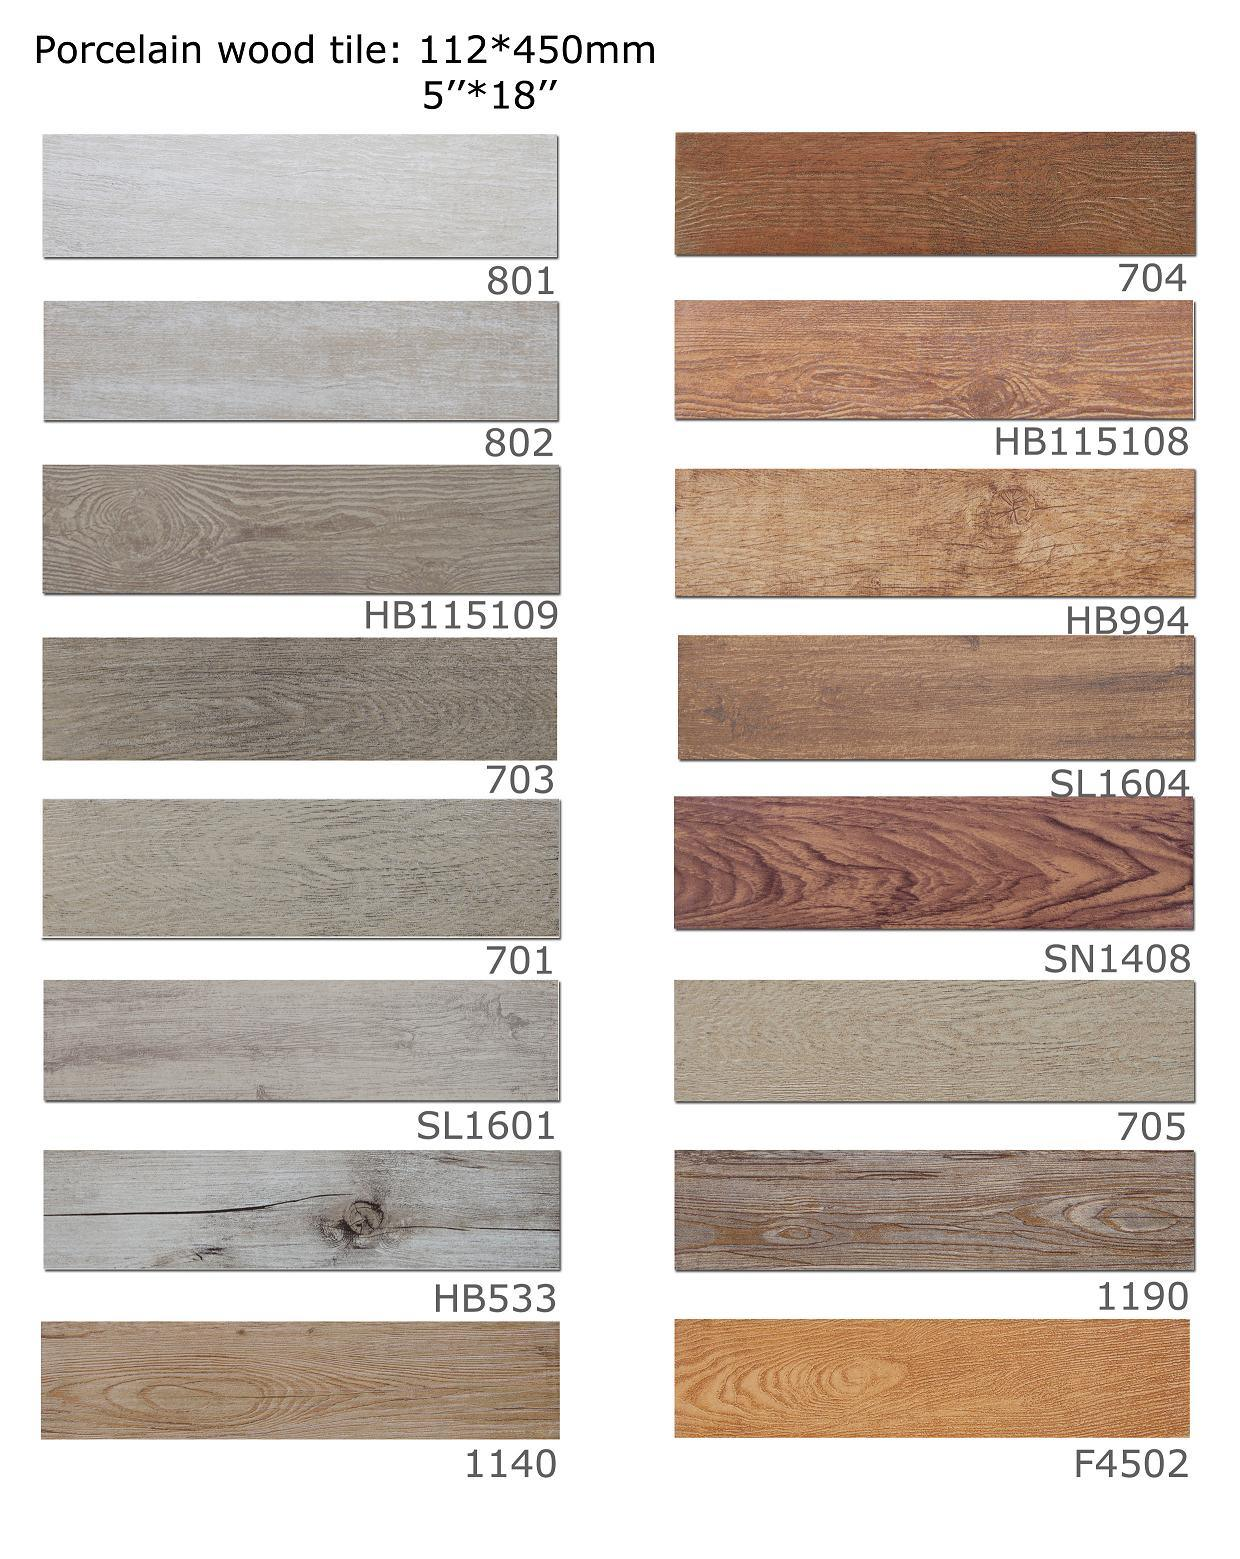 Ceramic tiles wooden finish images tile flooring design ideas china glazed ceramic tile wood grain finished porcelain tiles china glazed ceramic tile wood grain finished dailygadgetfo Choice Image